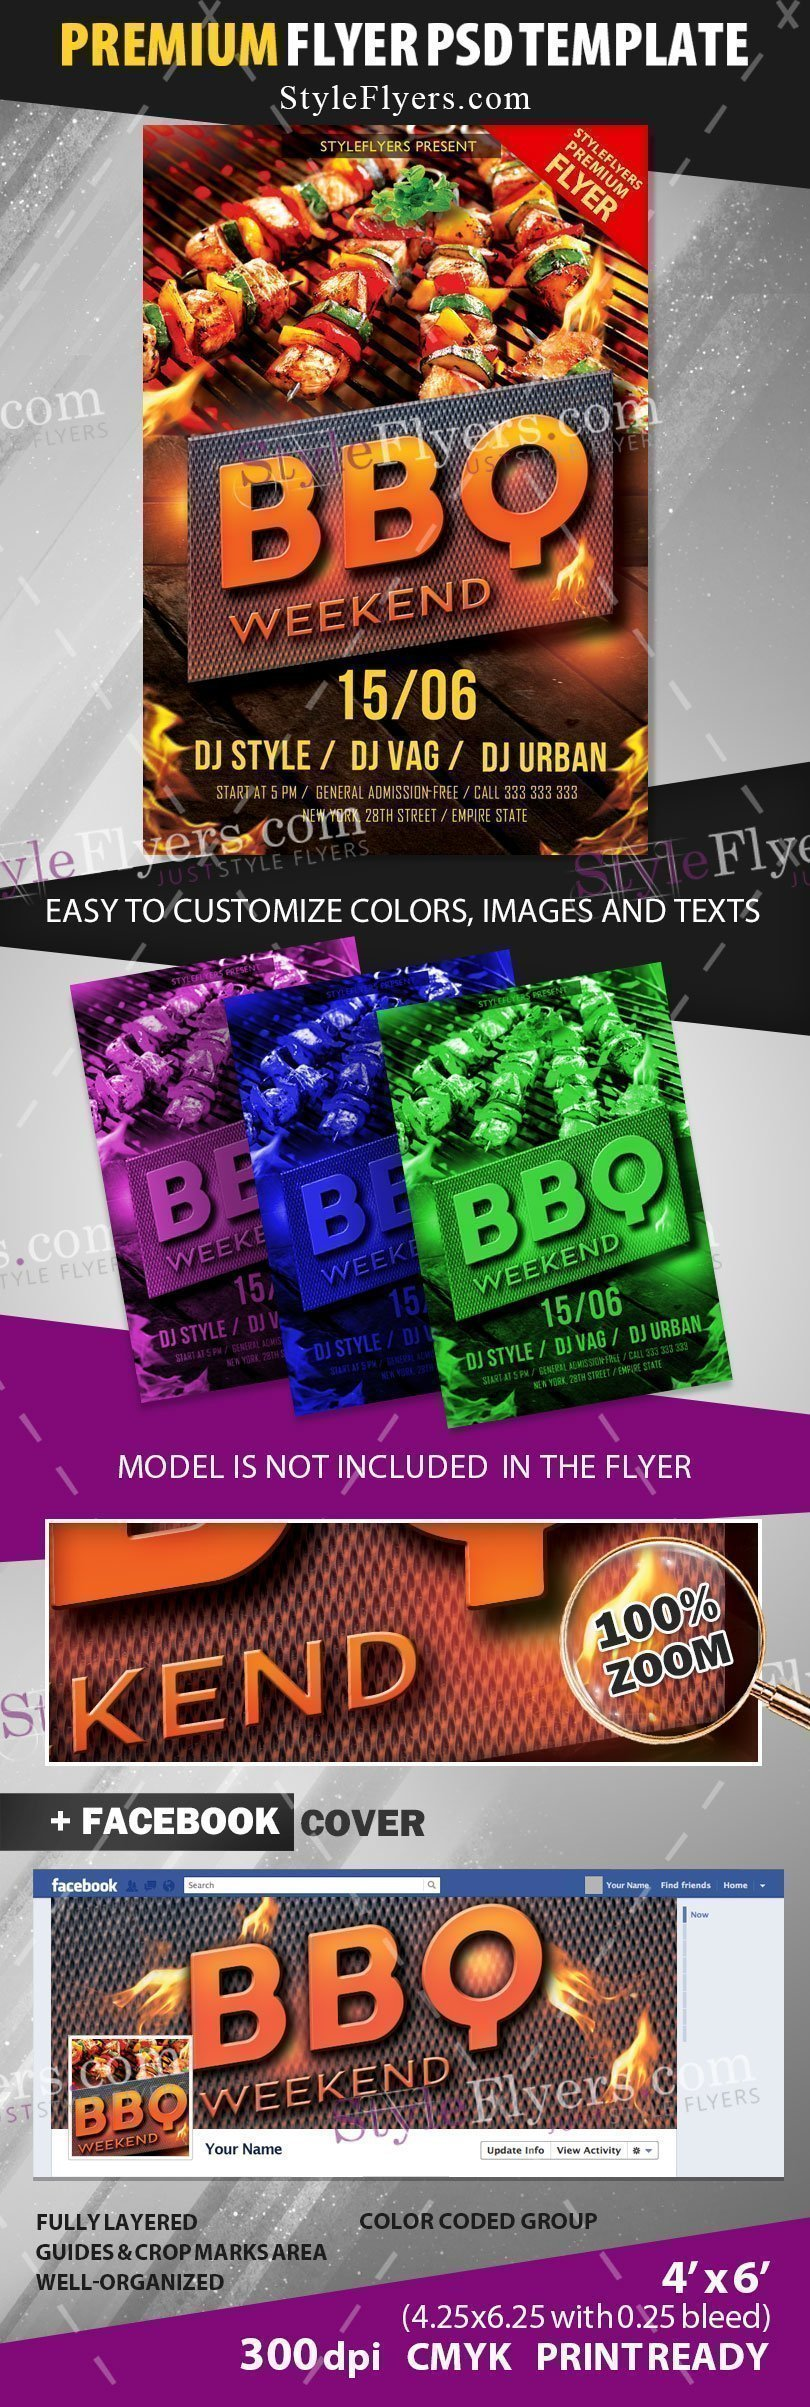 preview_bbq_premium_flyer_Template